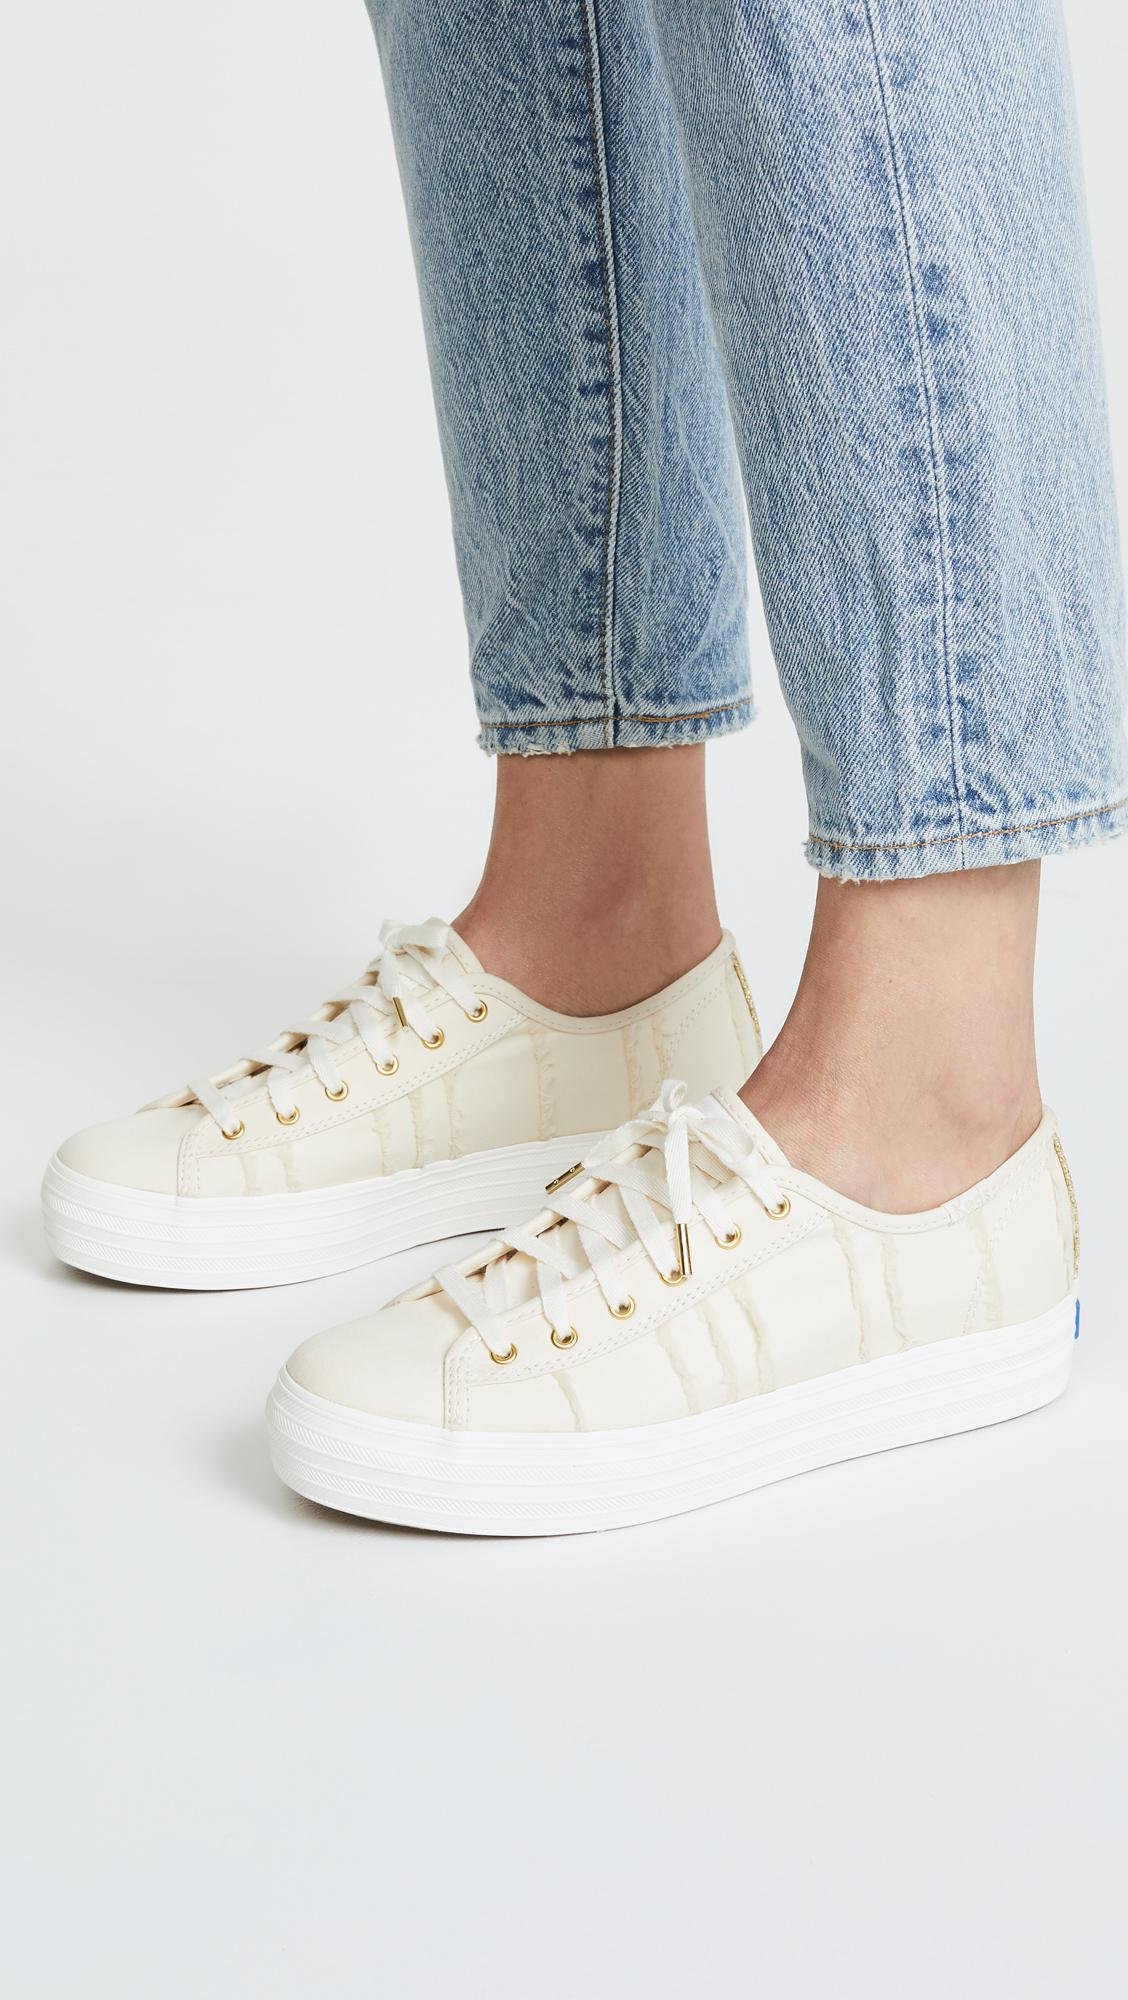 701a5413ca0 Lyst - Keds Triple Kick Eyelash Lace Up Sneakers